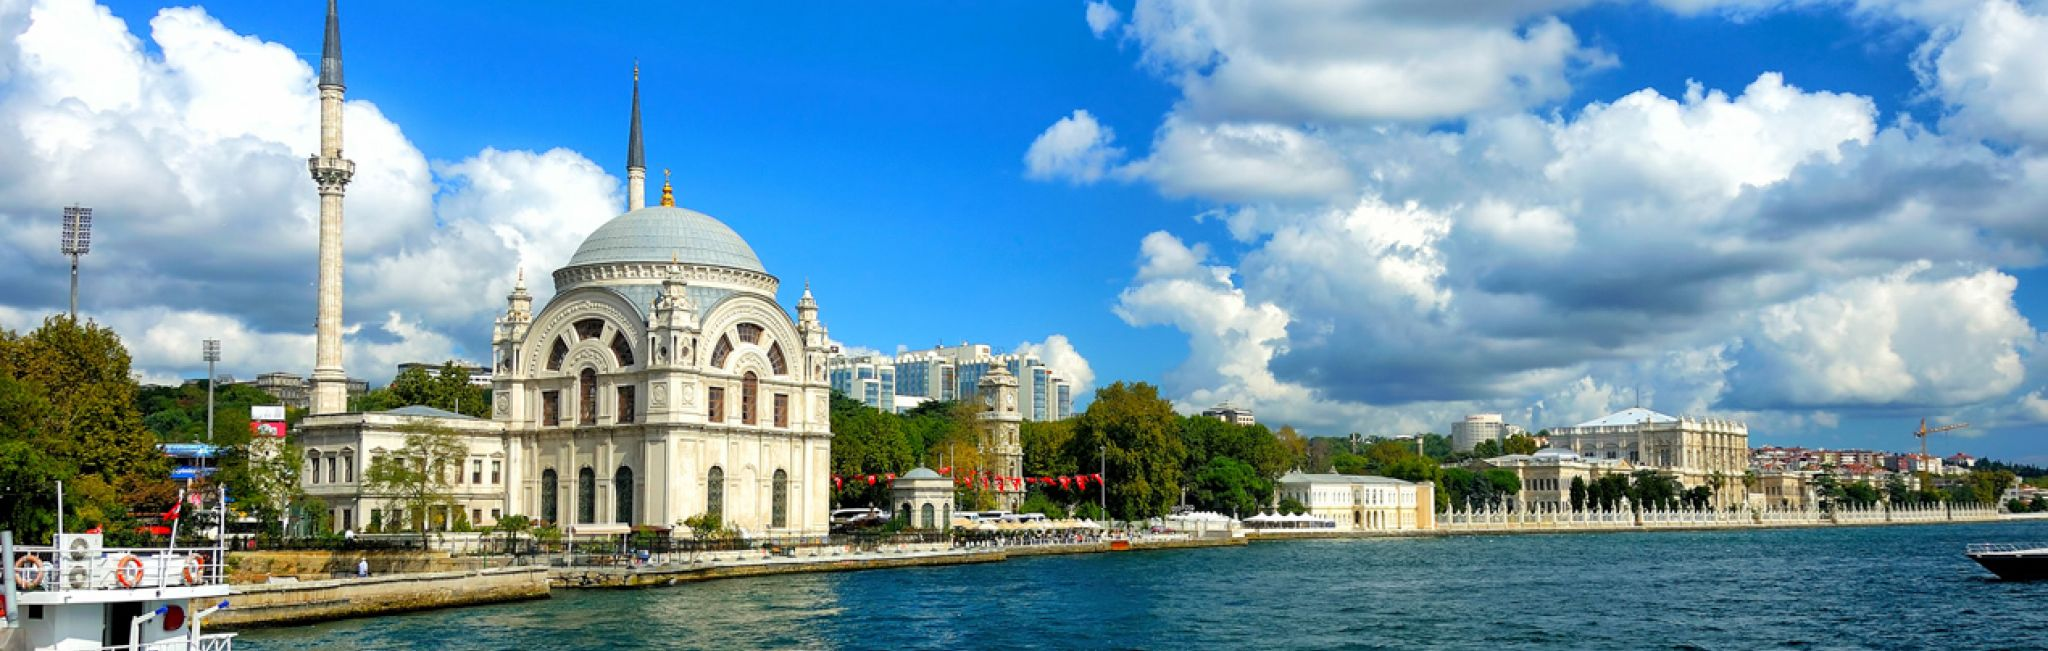 Dolmabahce Mosque in Bosphorus, Istanbul, Turkey.